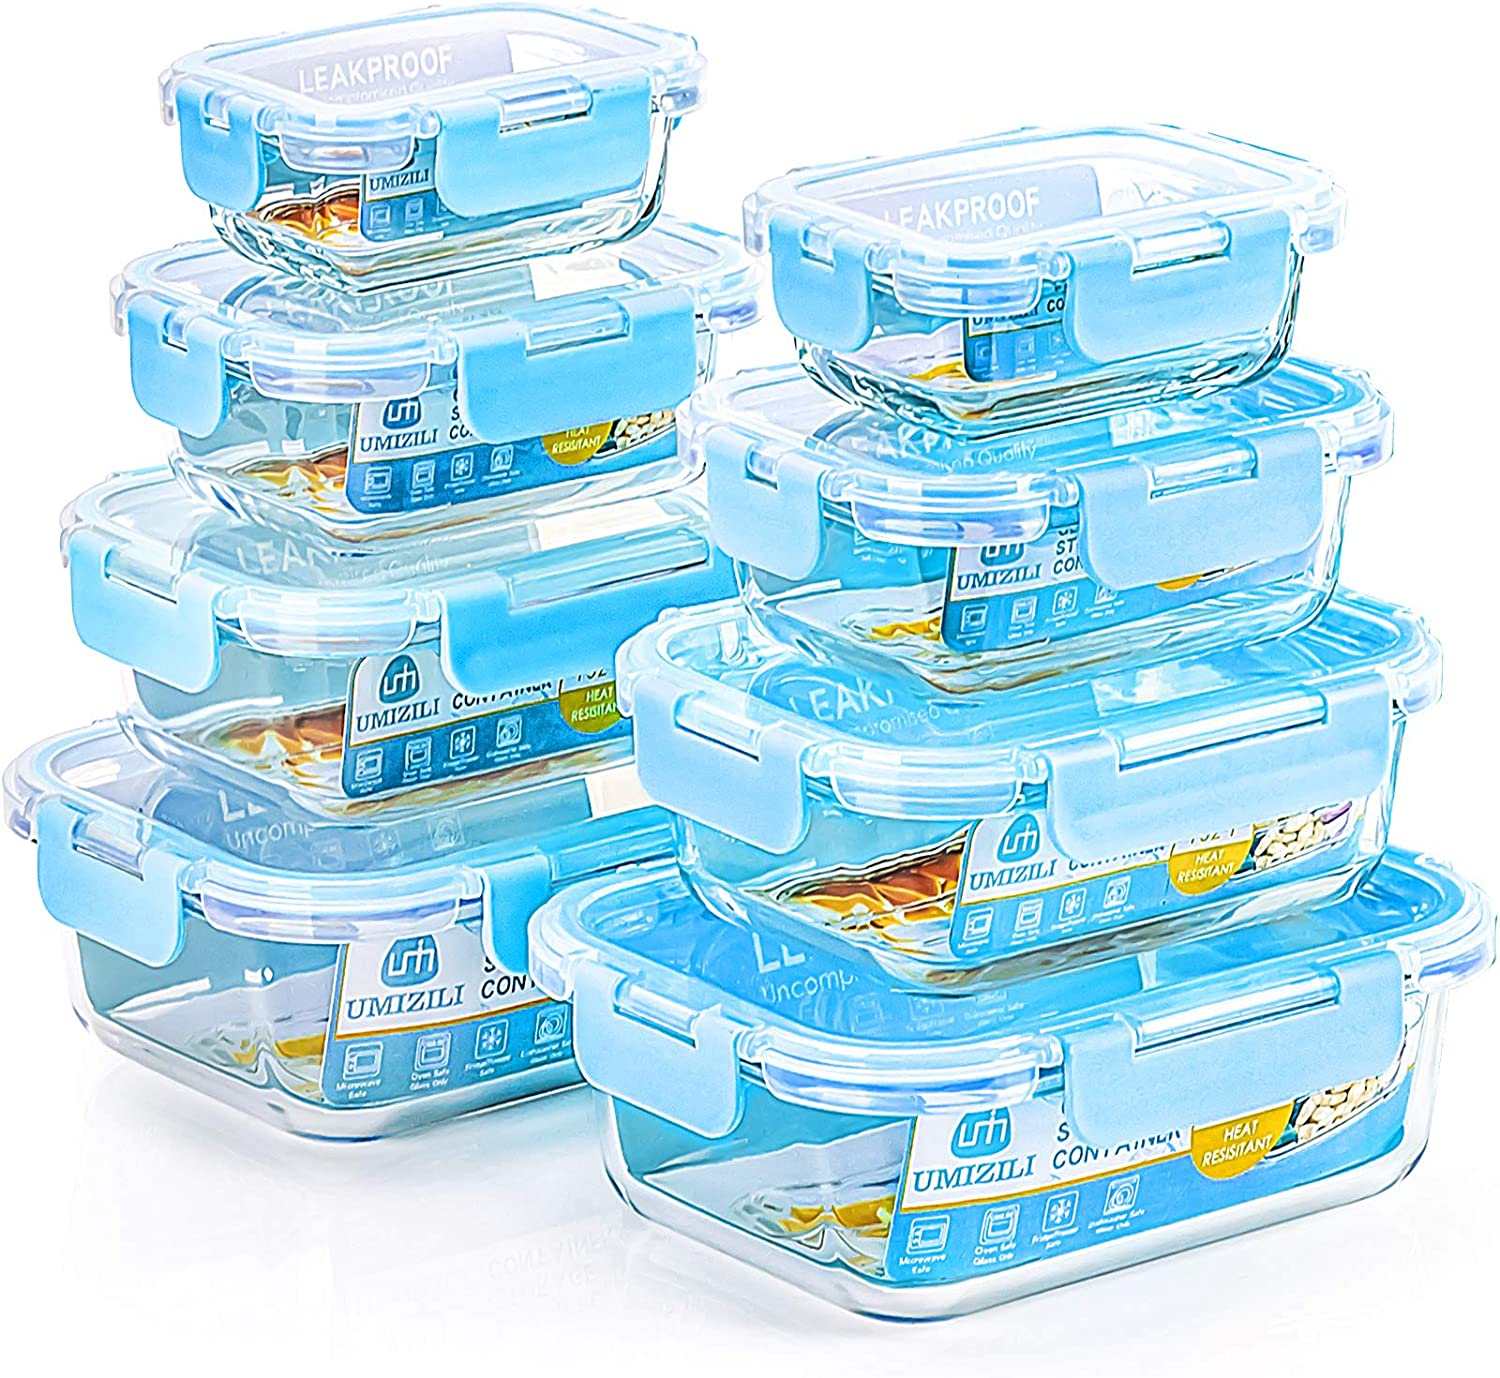 8 Pack Glass Food Storage Containers with Lids, Glass Meal Prep Containers with Snap Locking Lids and Silicone Seal, Stackable Lunch Boxes for Leftover On-the-go Meal Prepping, Dishwasher Safe